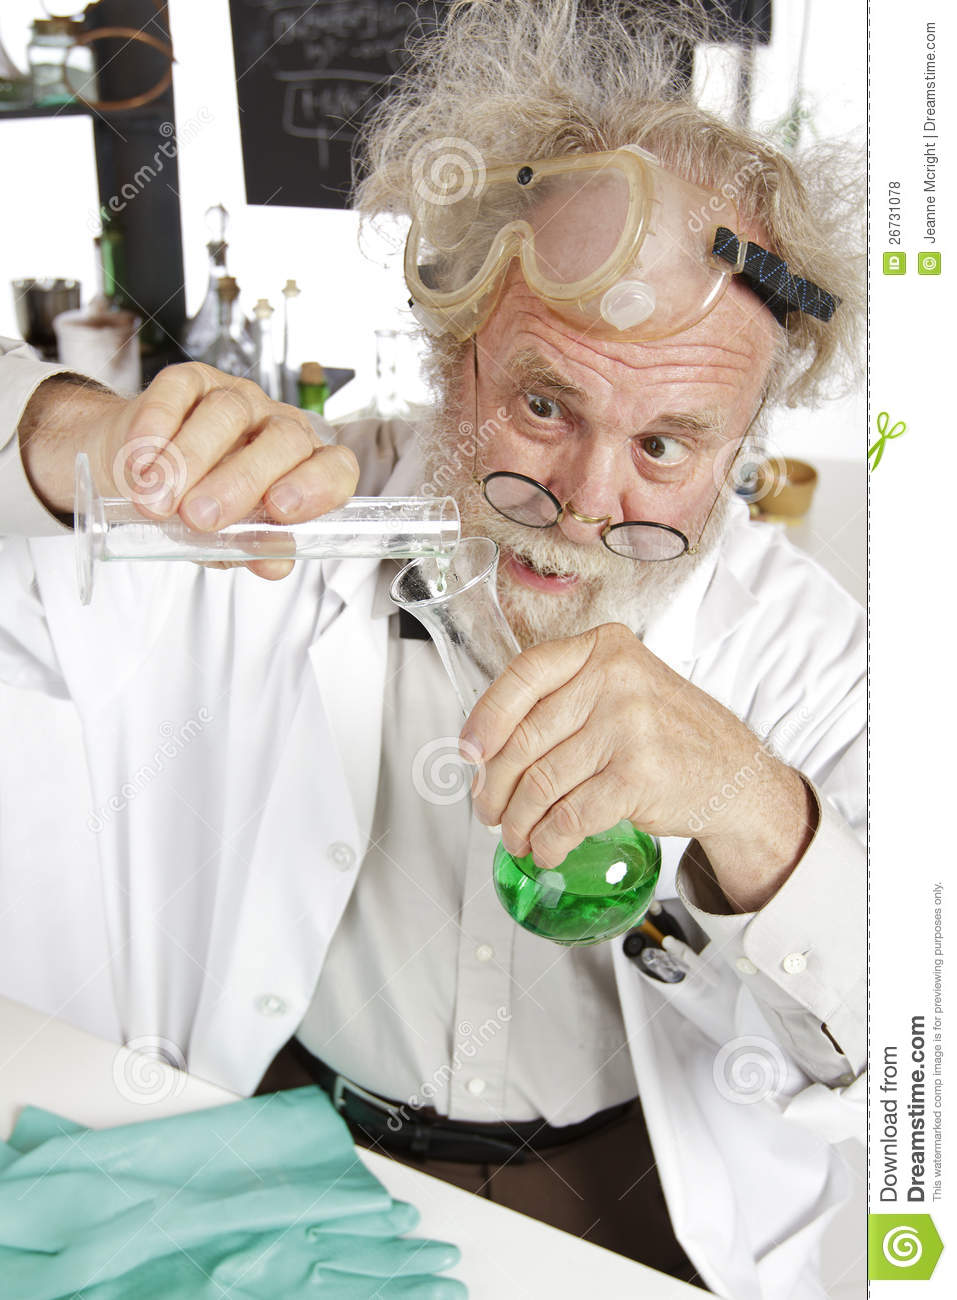 Mad Scientist Conducts Chemistry Experiment Royalty Free